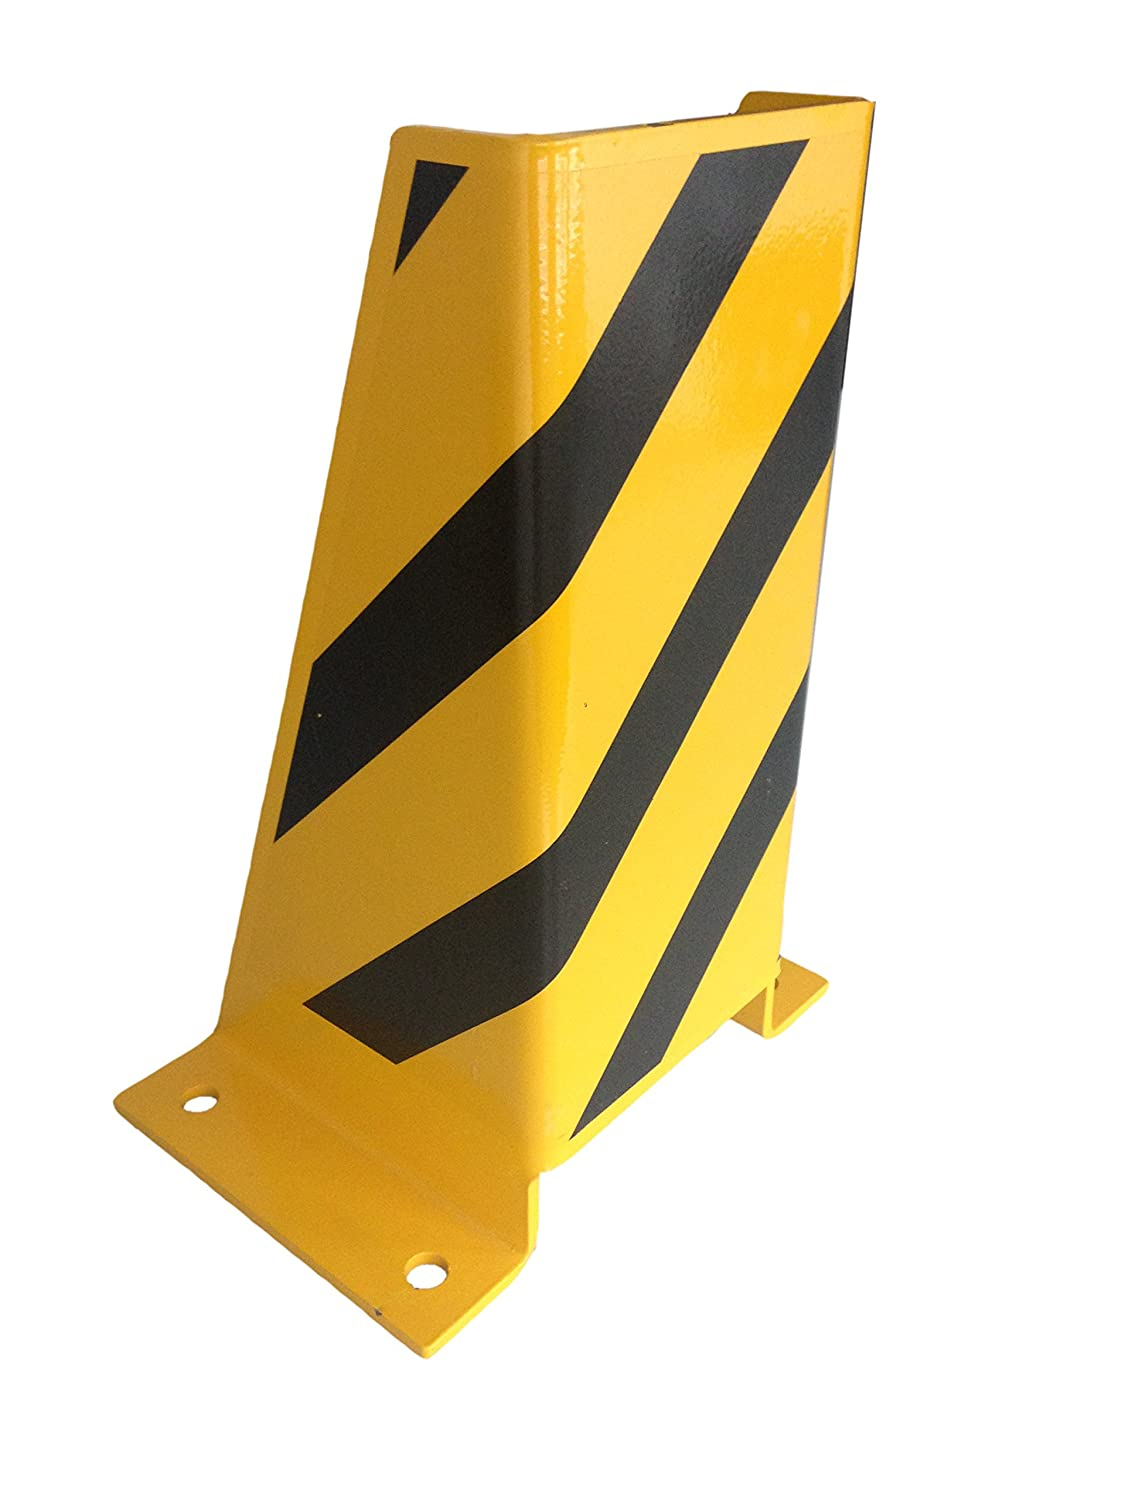 1A-Safety Crash Guard AFS-U made of steel, U-profile, crash protector, collision protection, bumper guard, impact protector, WxDxH: 24,5 x 20 x 40 cm, yellow/black